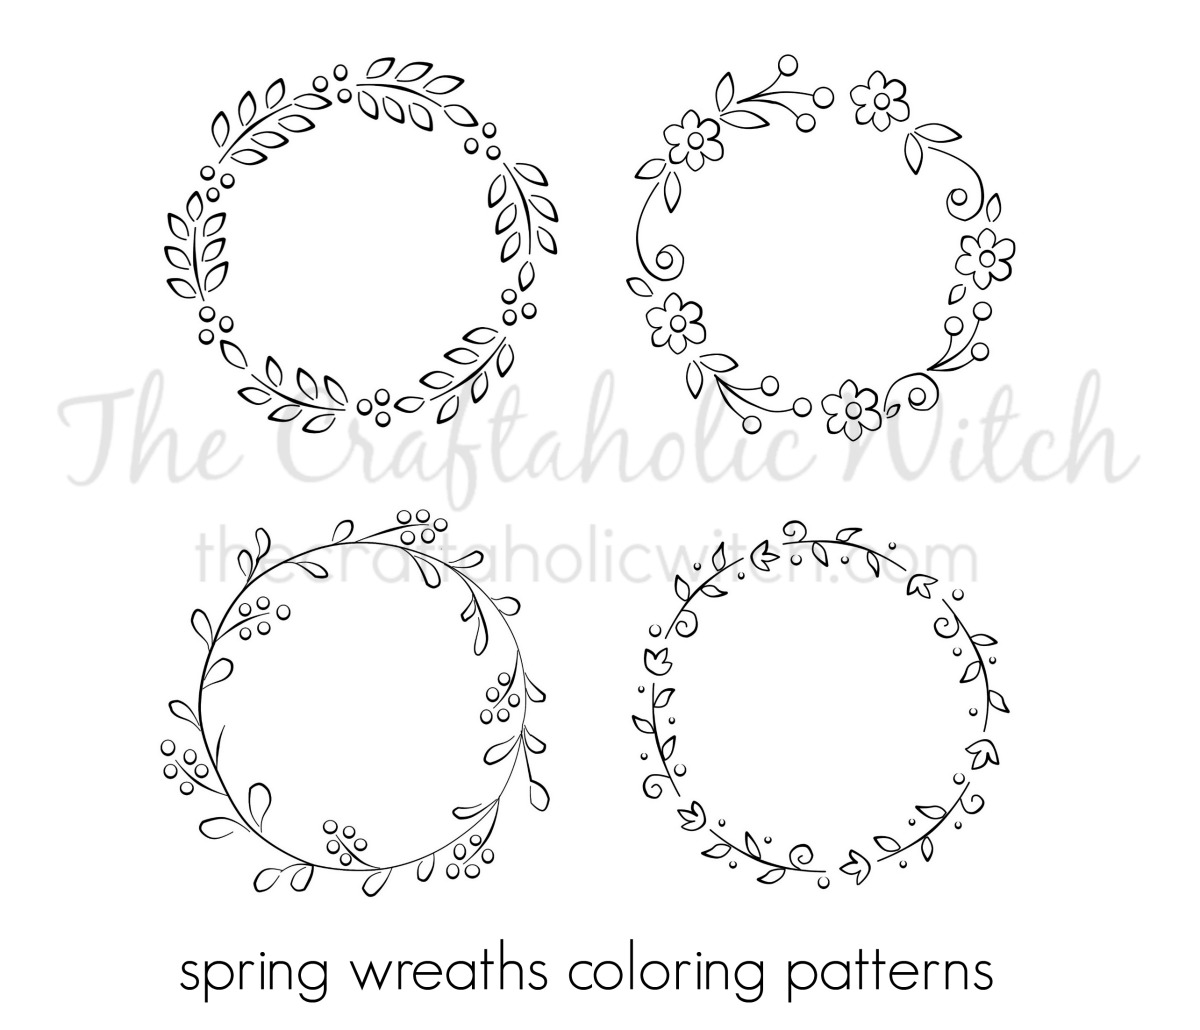 The Craftaholic WitchSpring Wreath